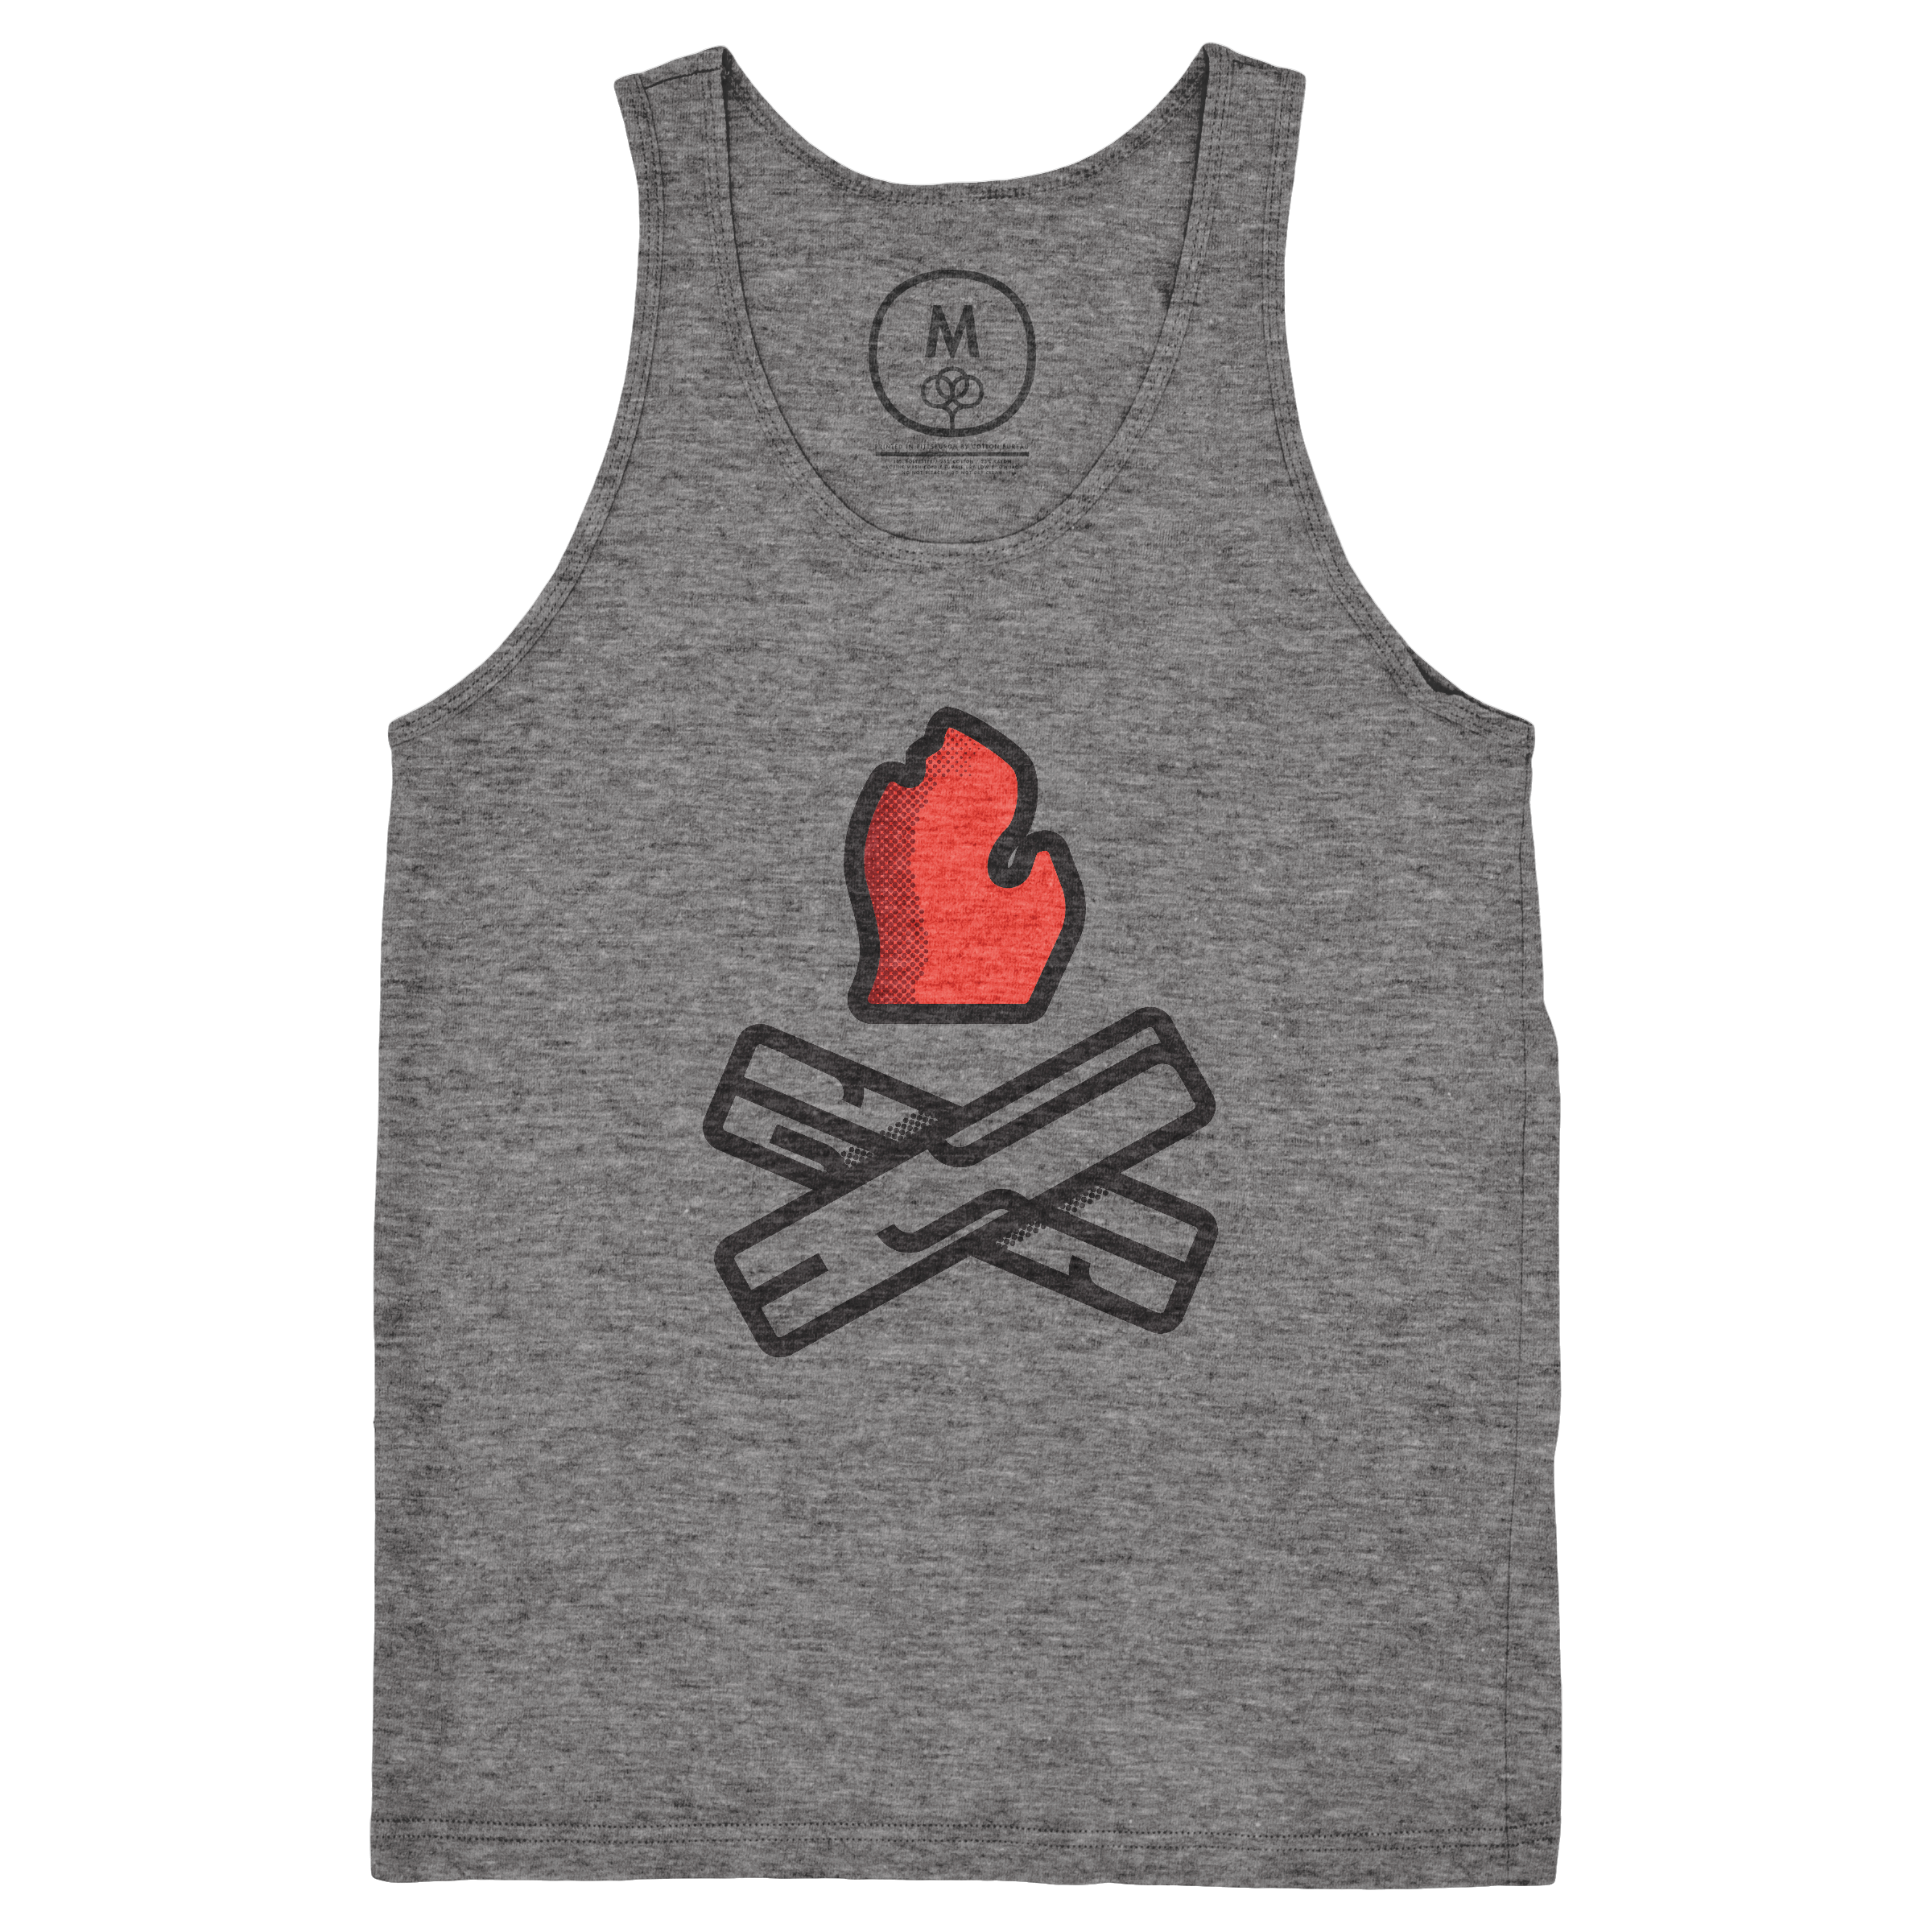 Let's Go Camping Tank Top